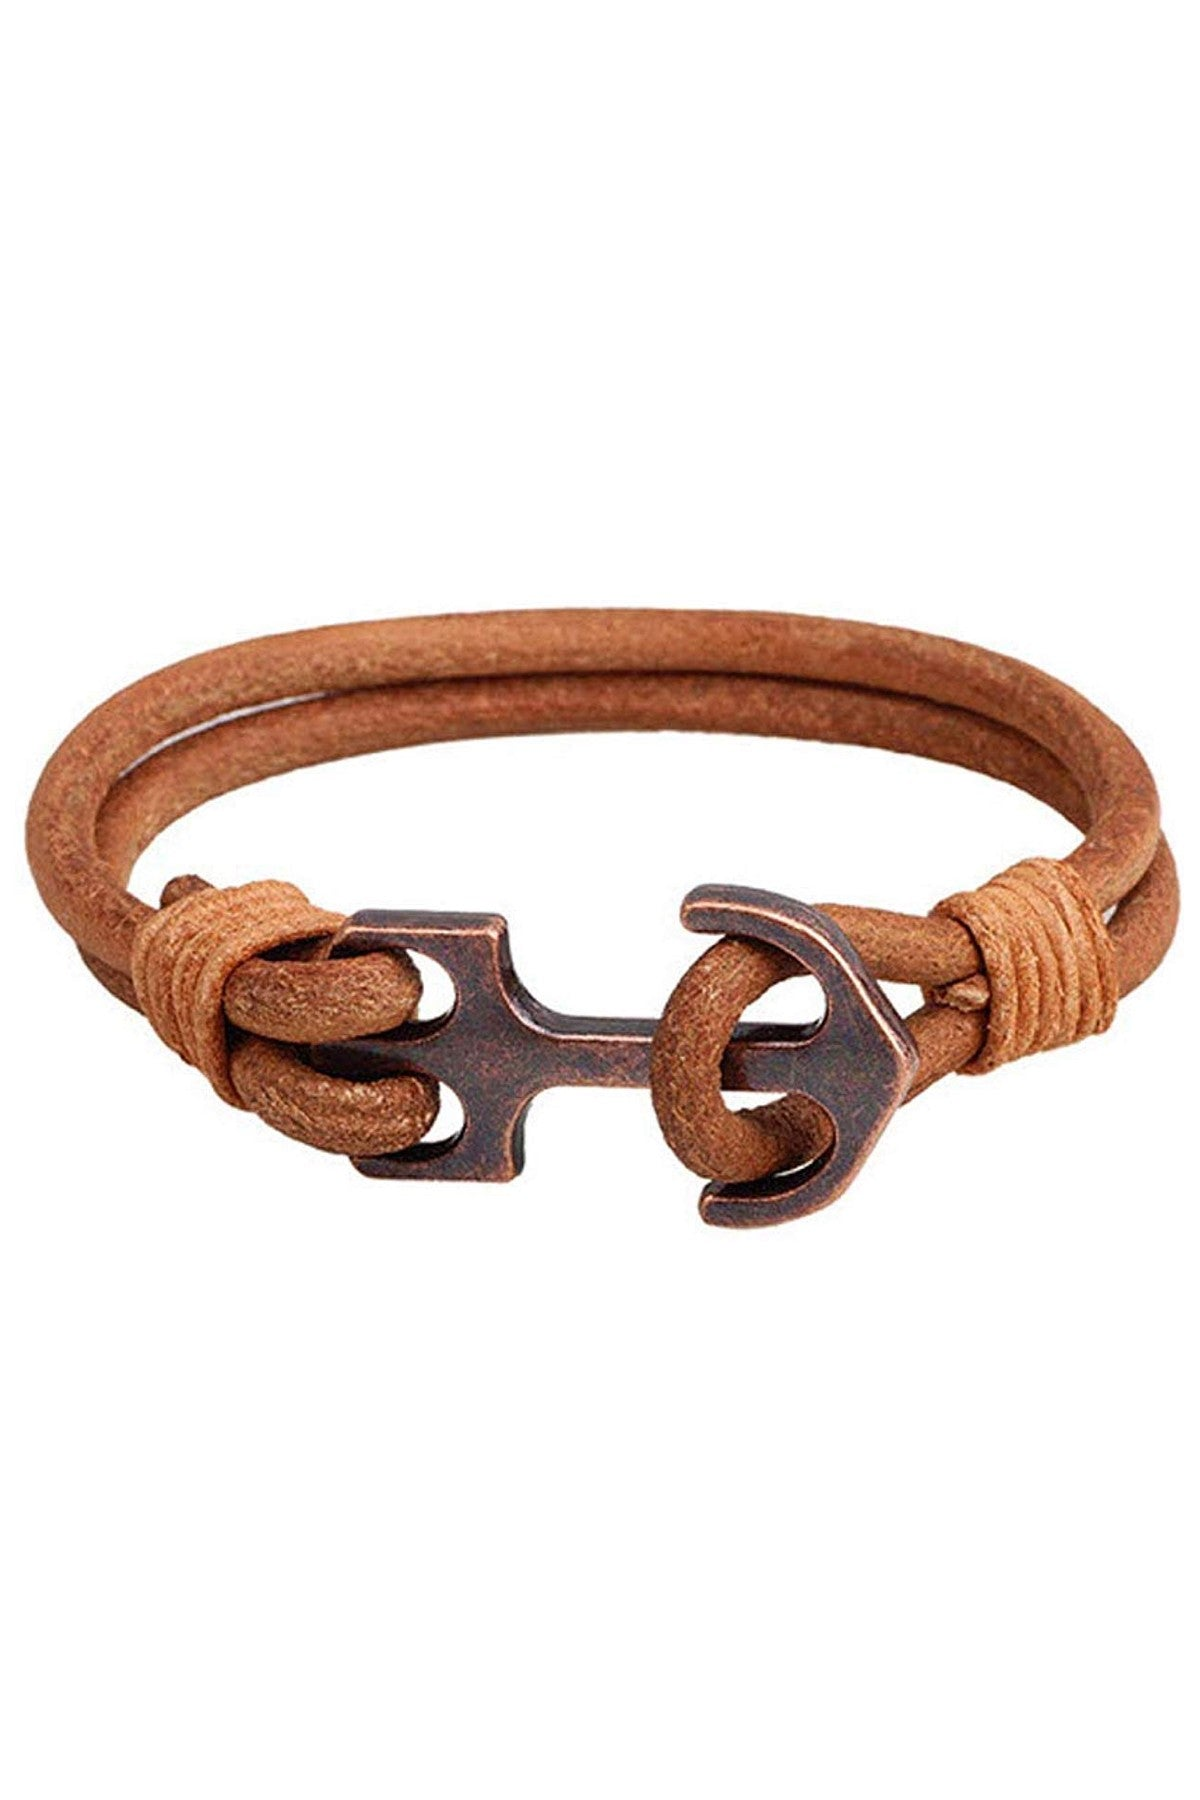 Rustic Tan Leather Anchor Bracelet